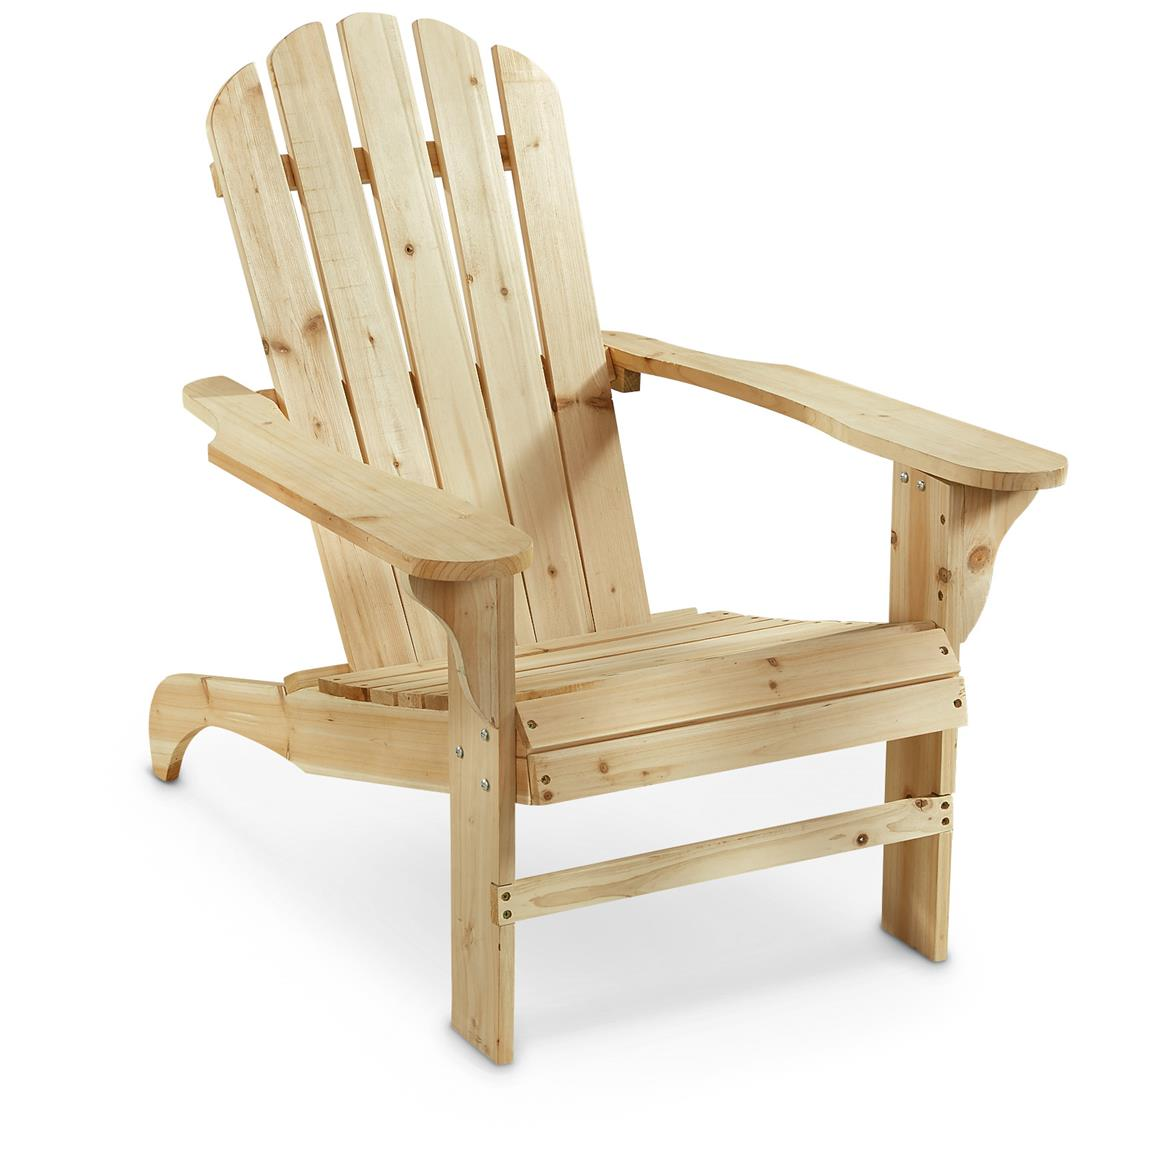 CASTLECREEK Adirondack Chair